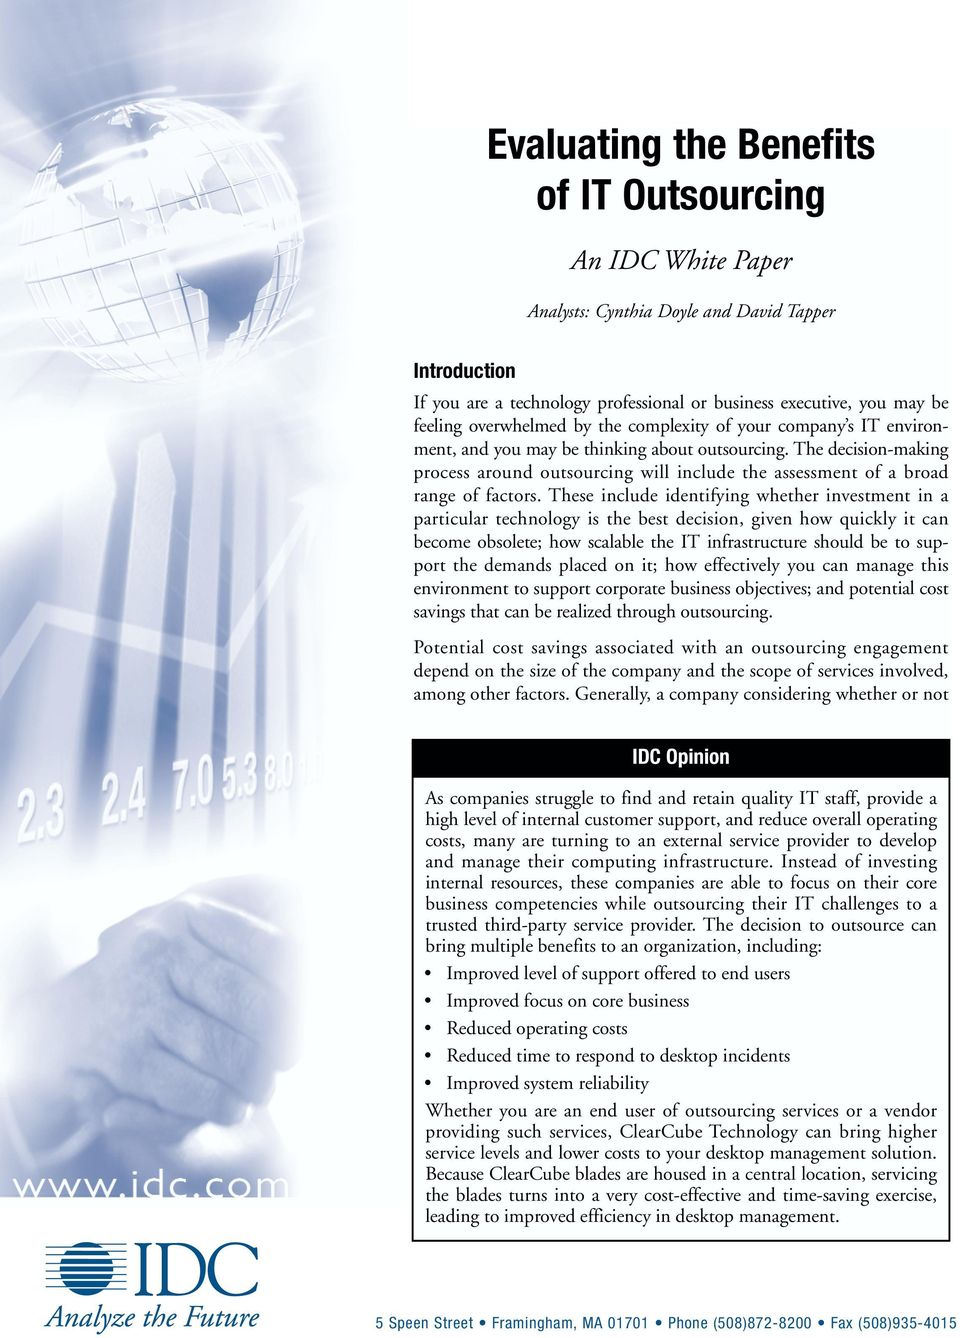 The decision-making process around outsourcing will include the assessment of a broad range of factors.